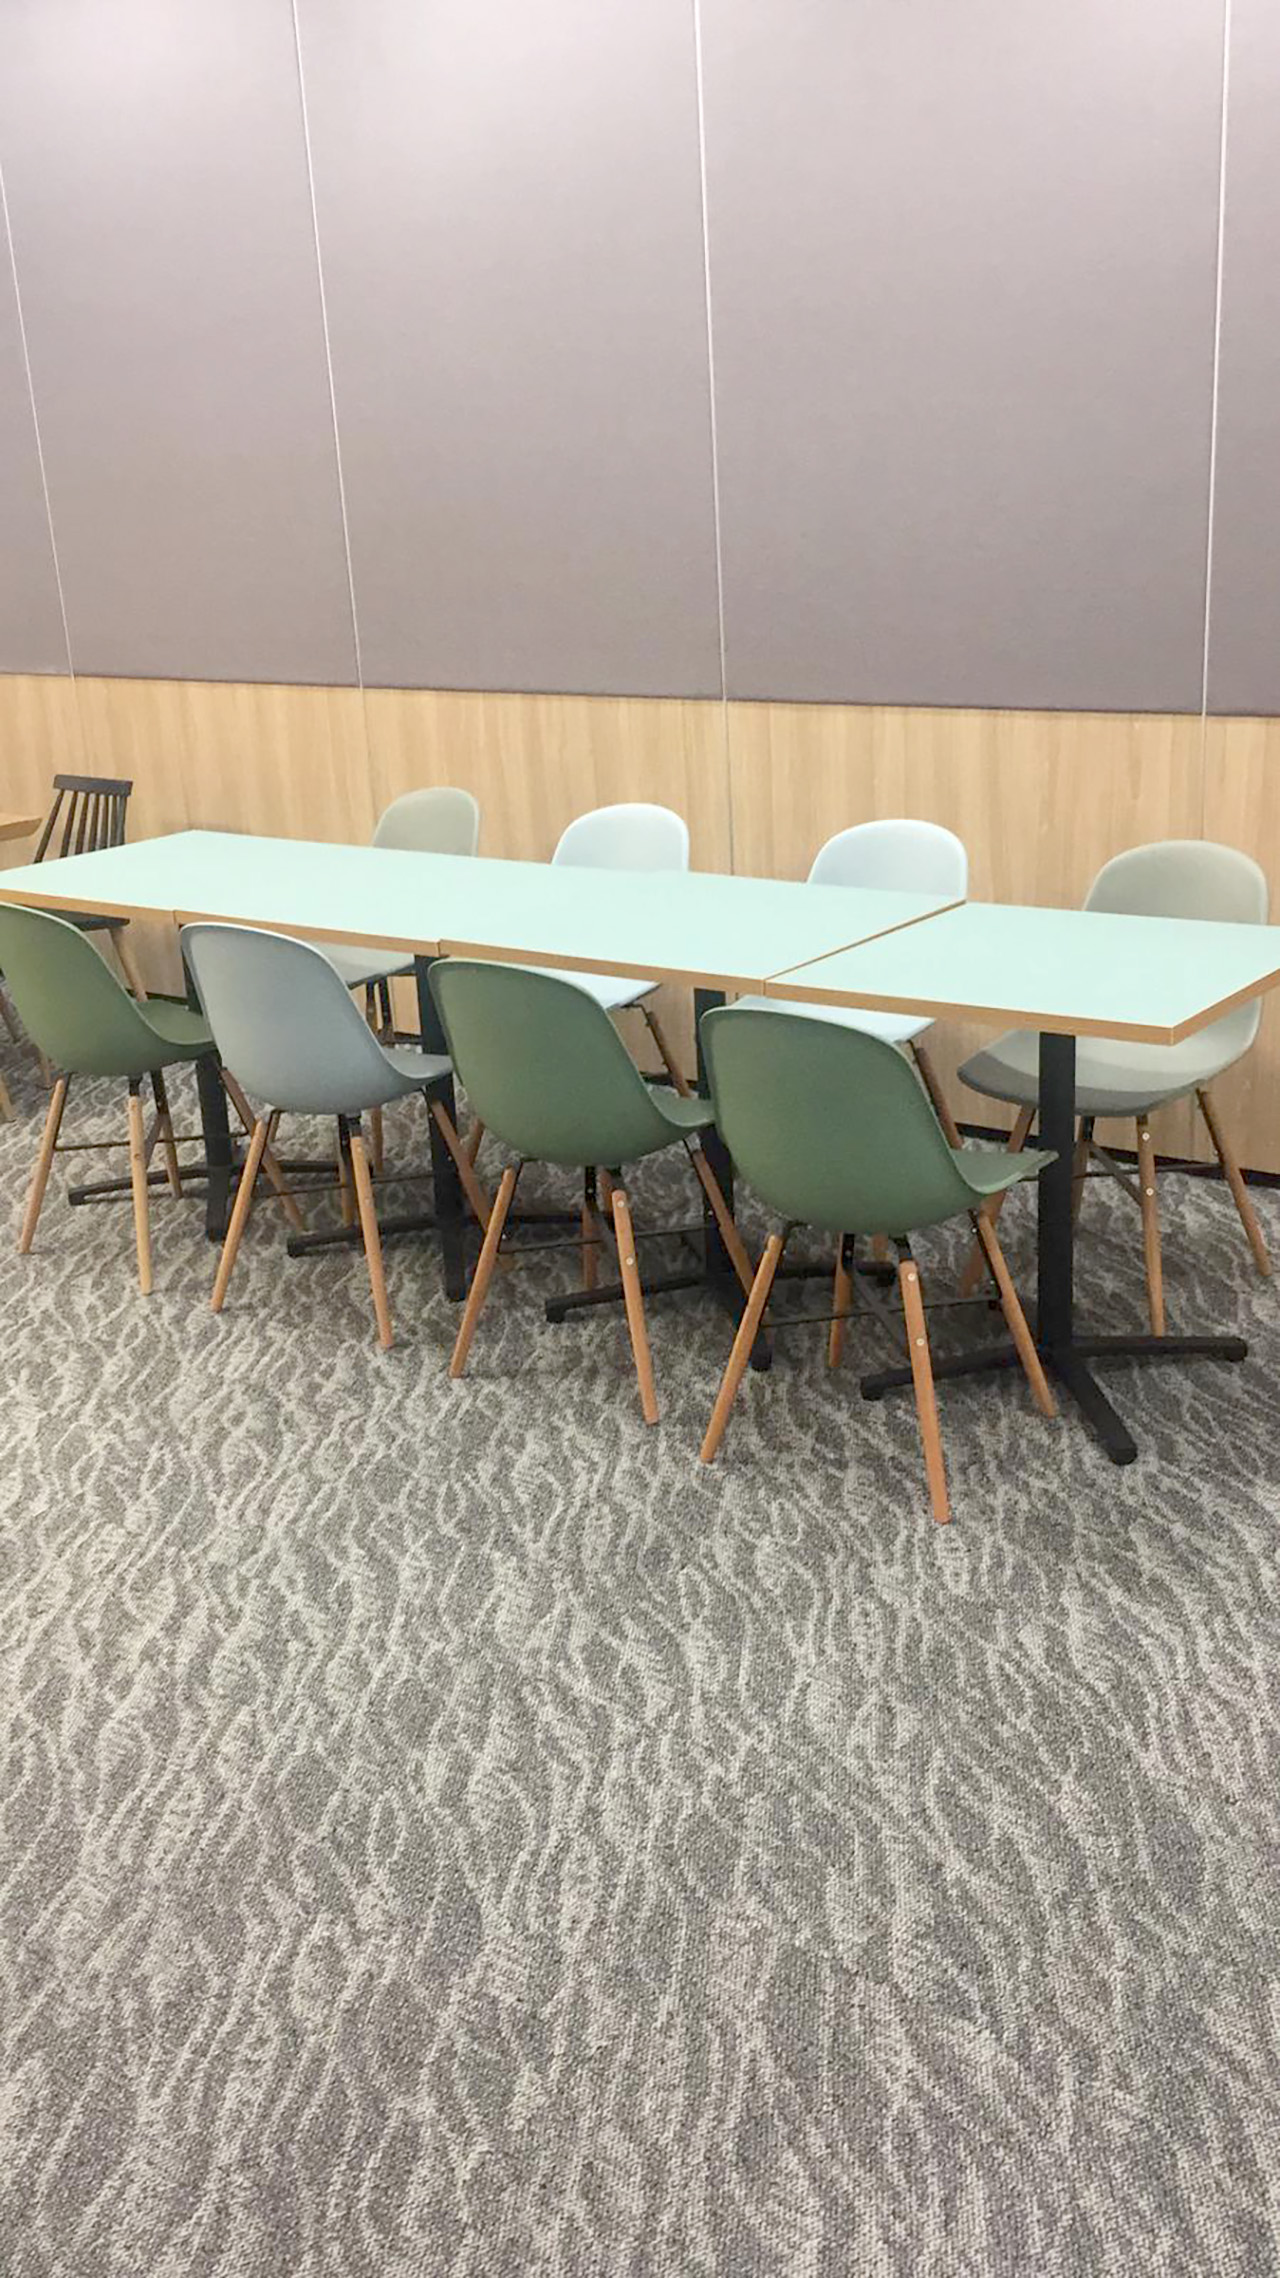 ECON Healthcare Group - Changi Road | Product Seen: [Adik – Wood Side Chair & Customised Laminate tabletop + Grit Non-foldable Table Base]